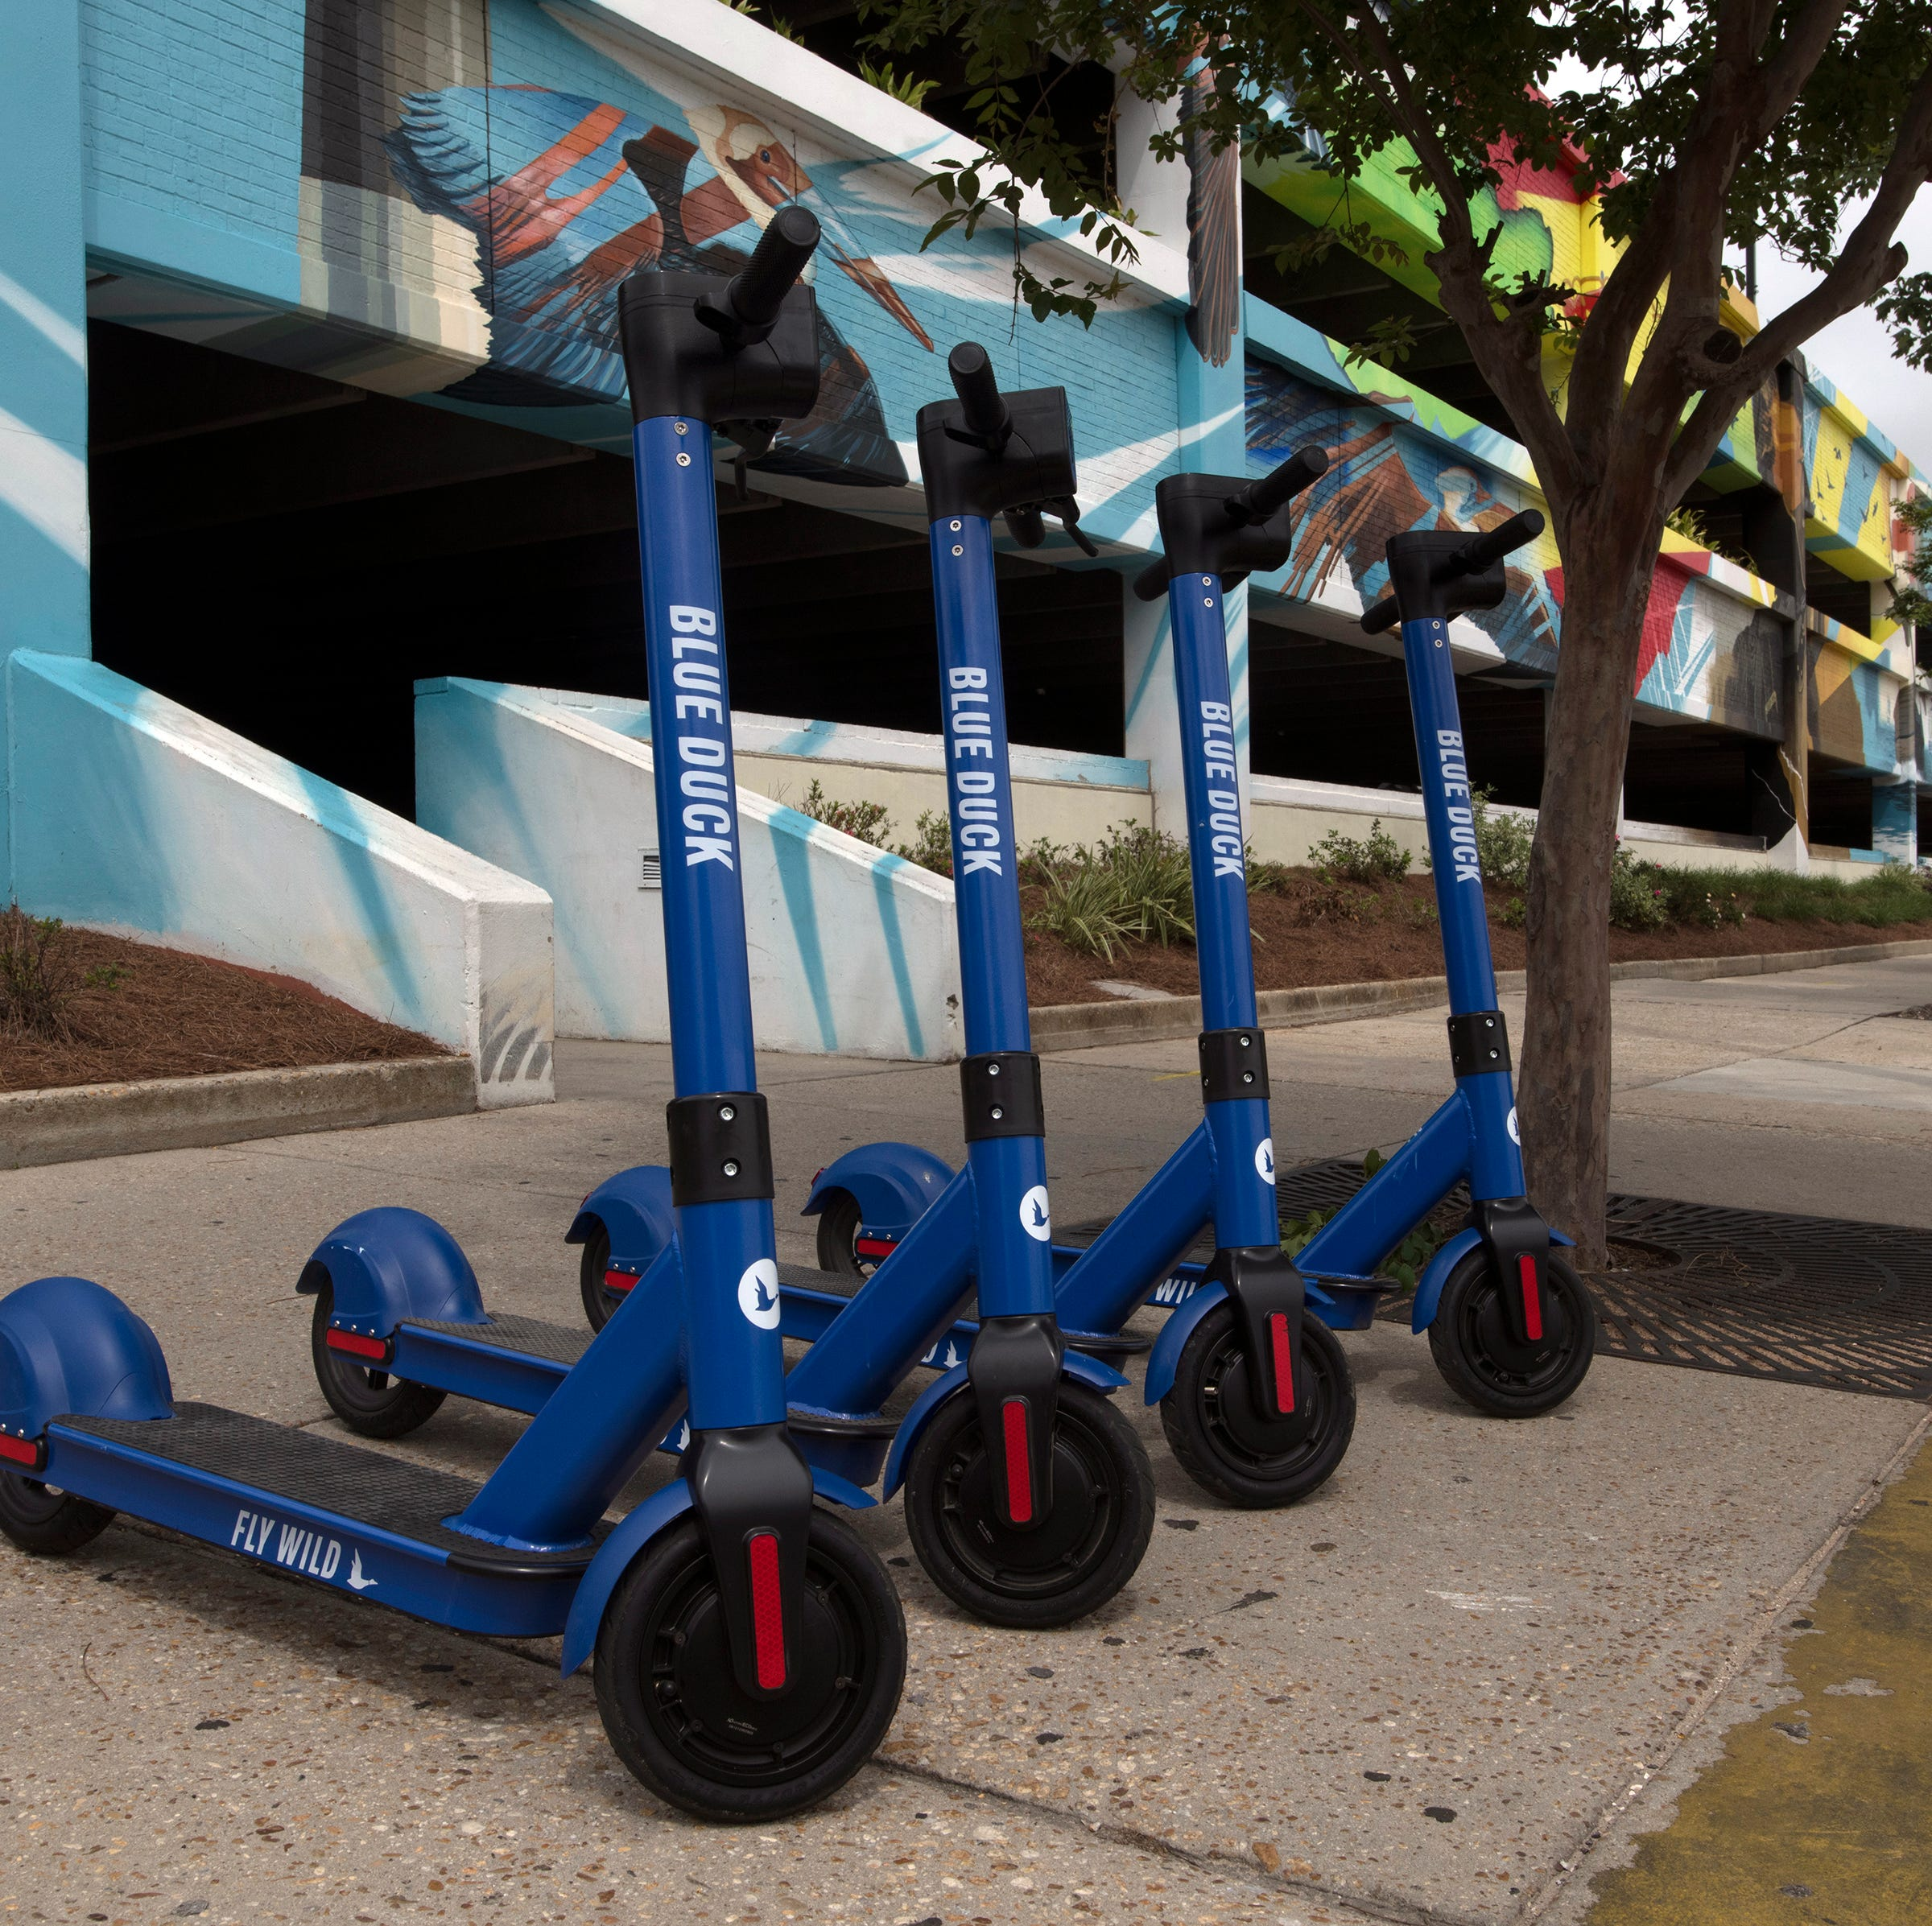 Pensacola removes Blue Duck Scooters from downtown, plans to review their legality